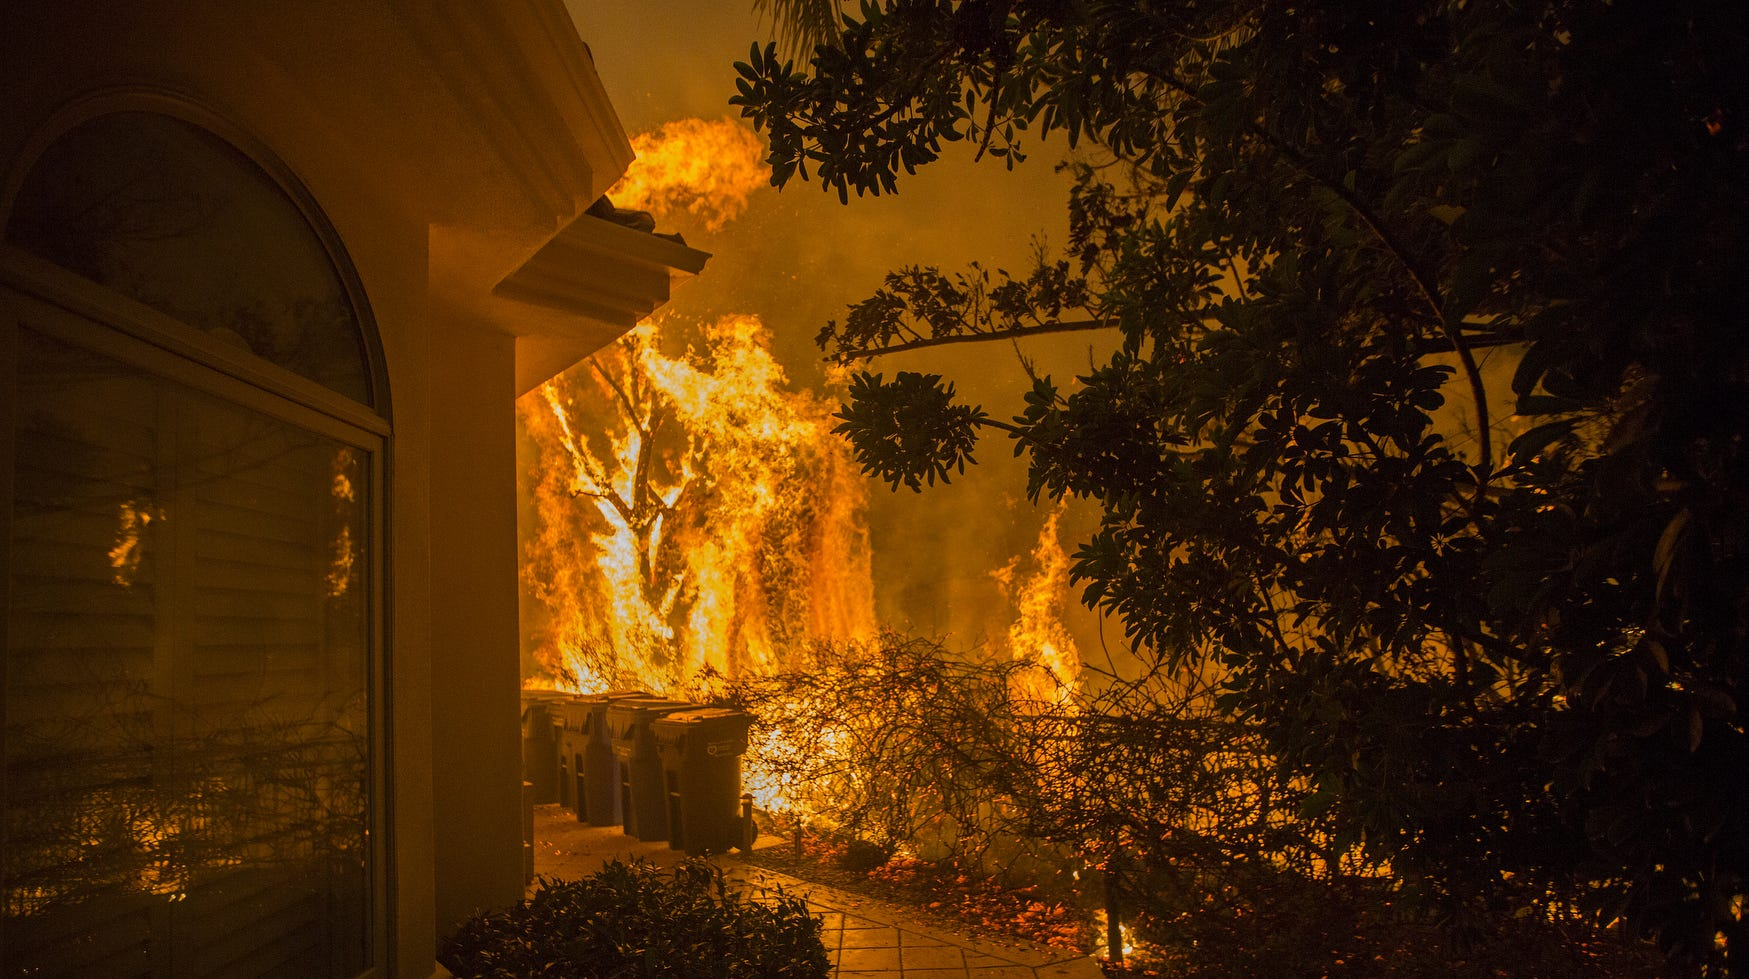 California forest fires roar, driving 250,000 people out of their homes in LA